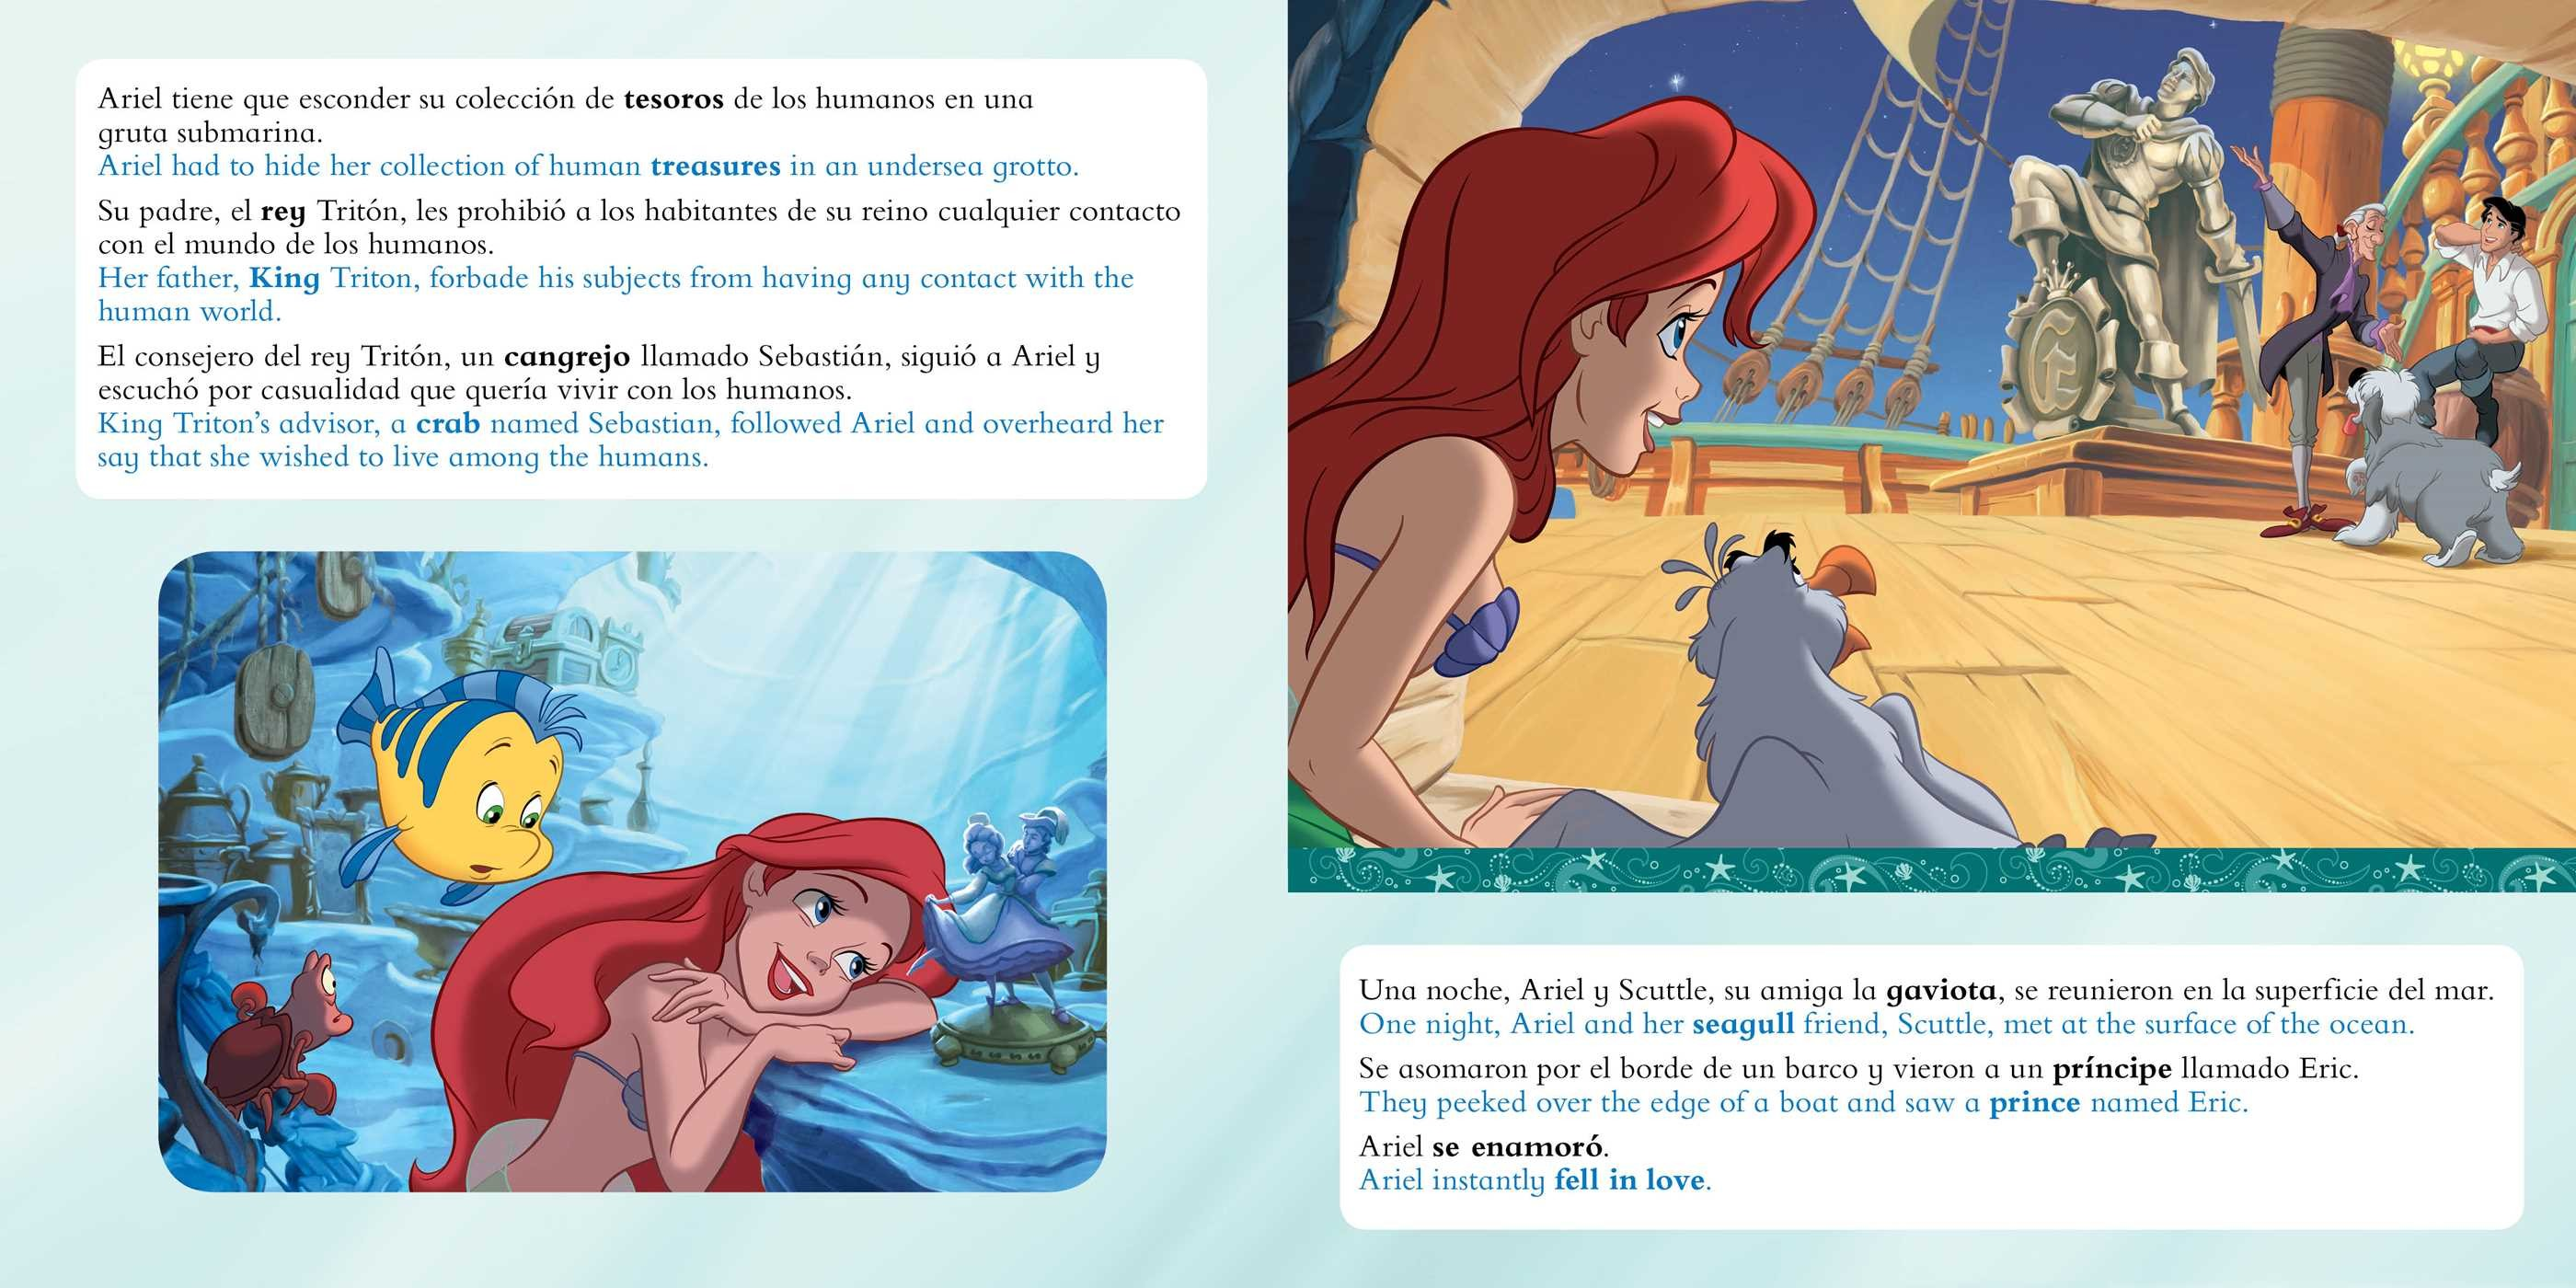 The little mermaid movie storybook libro basado en la pelicula english spanish disney 9781499807967.in01